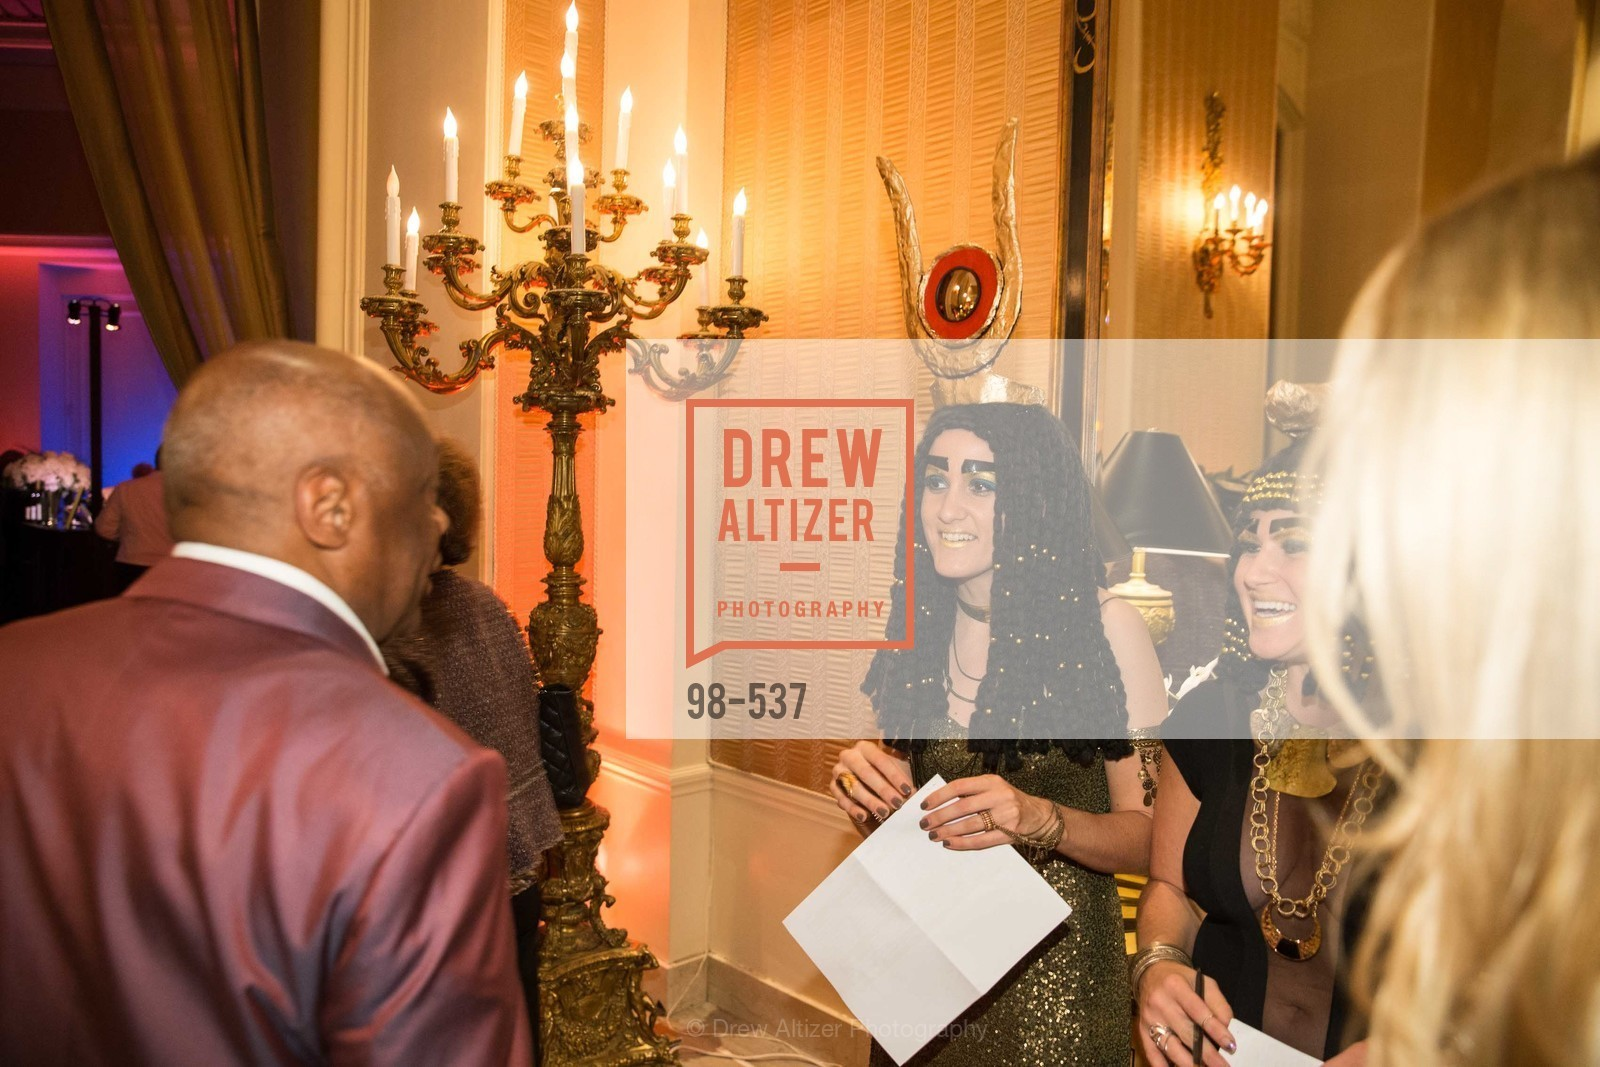 Willie Brown, Tiffany Kramer, TOP OF THE MARK'S 75TH Anniversary Party, US, November 7th, 2014,Drew Altizer, Drew Altizer Photography, full-service agency, private events, San Francisco photographer, photographer california